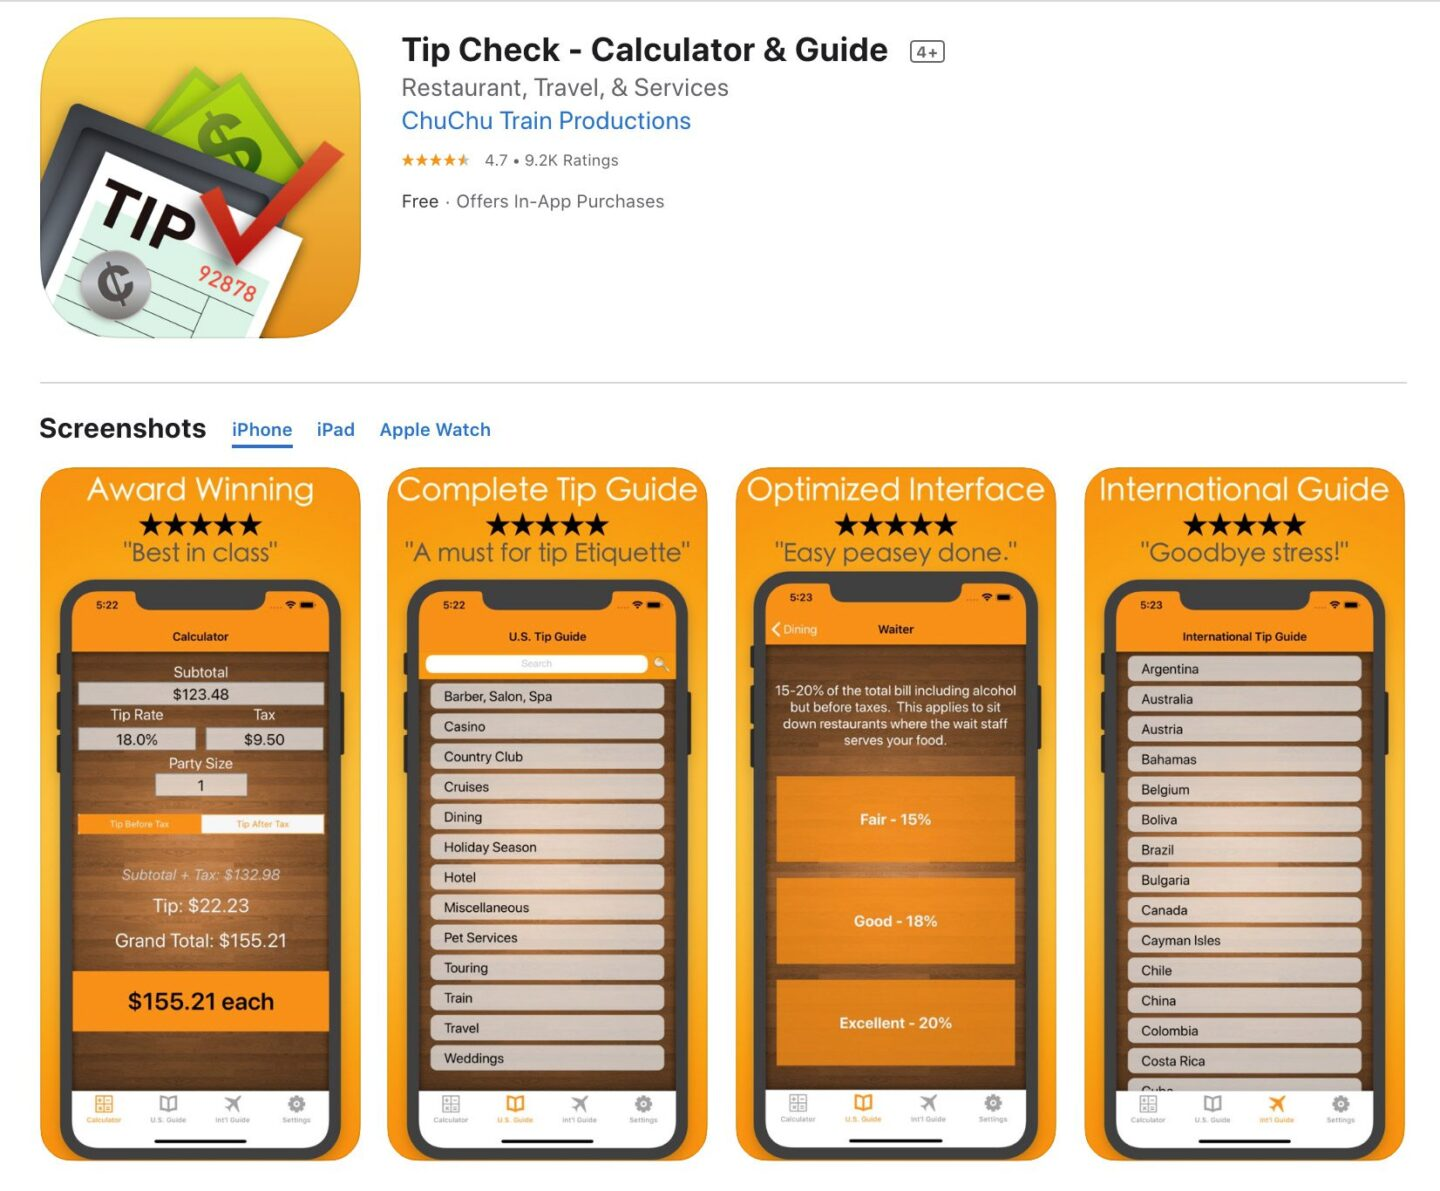 Screenshot of the Tips Check app from the iOS app store.